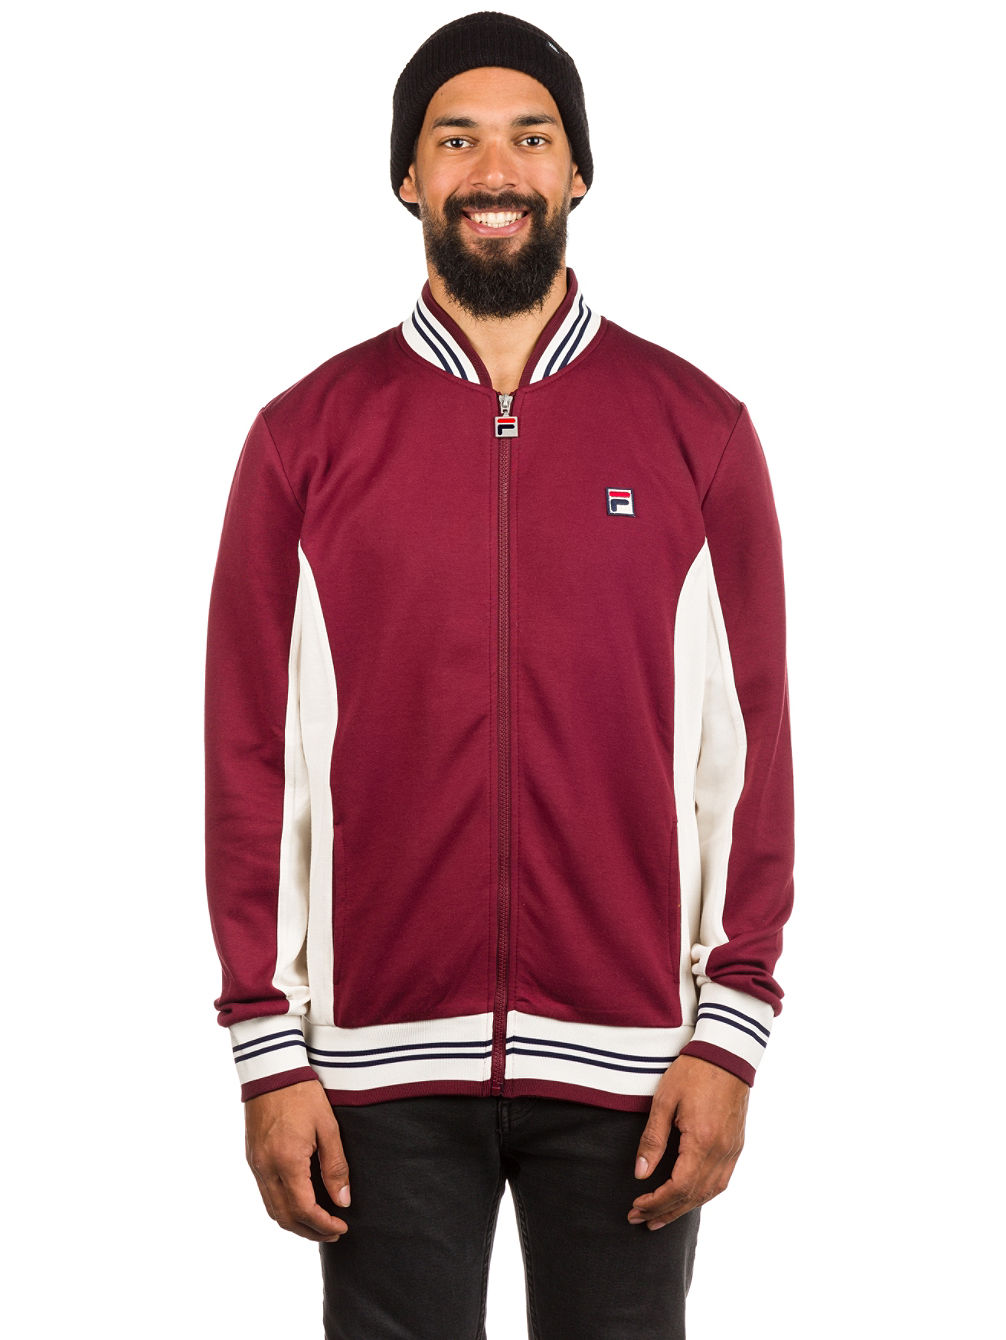 Buy Fila Settanta Jacket online at blue-tomato.com c349fbd675e9